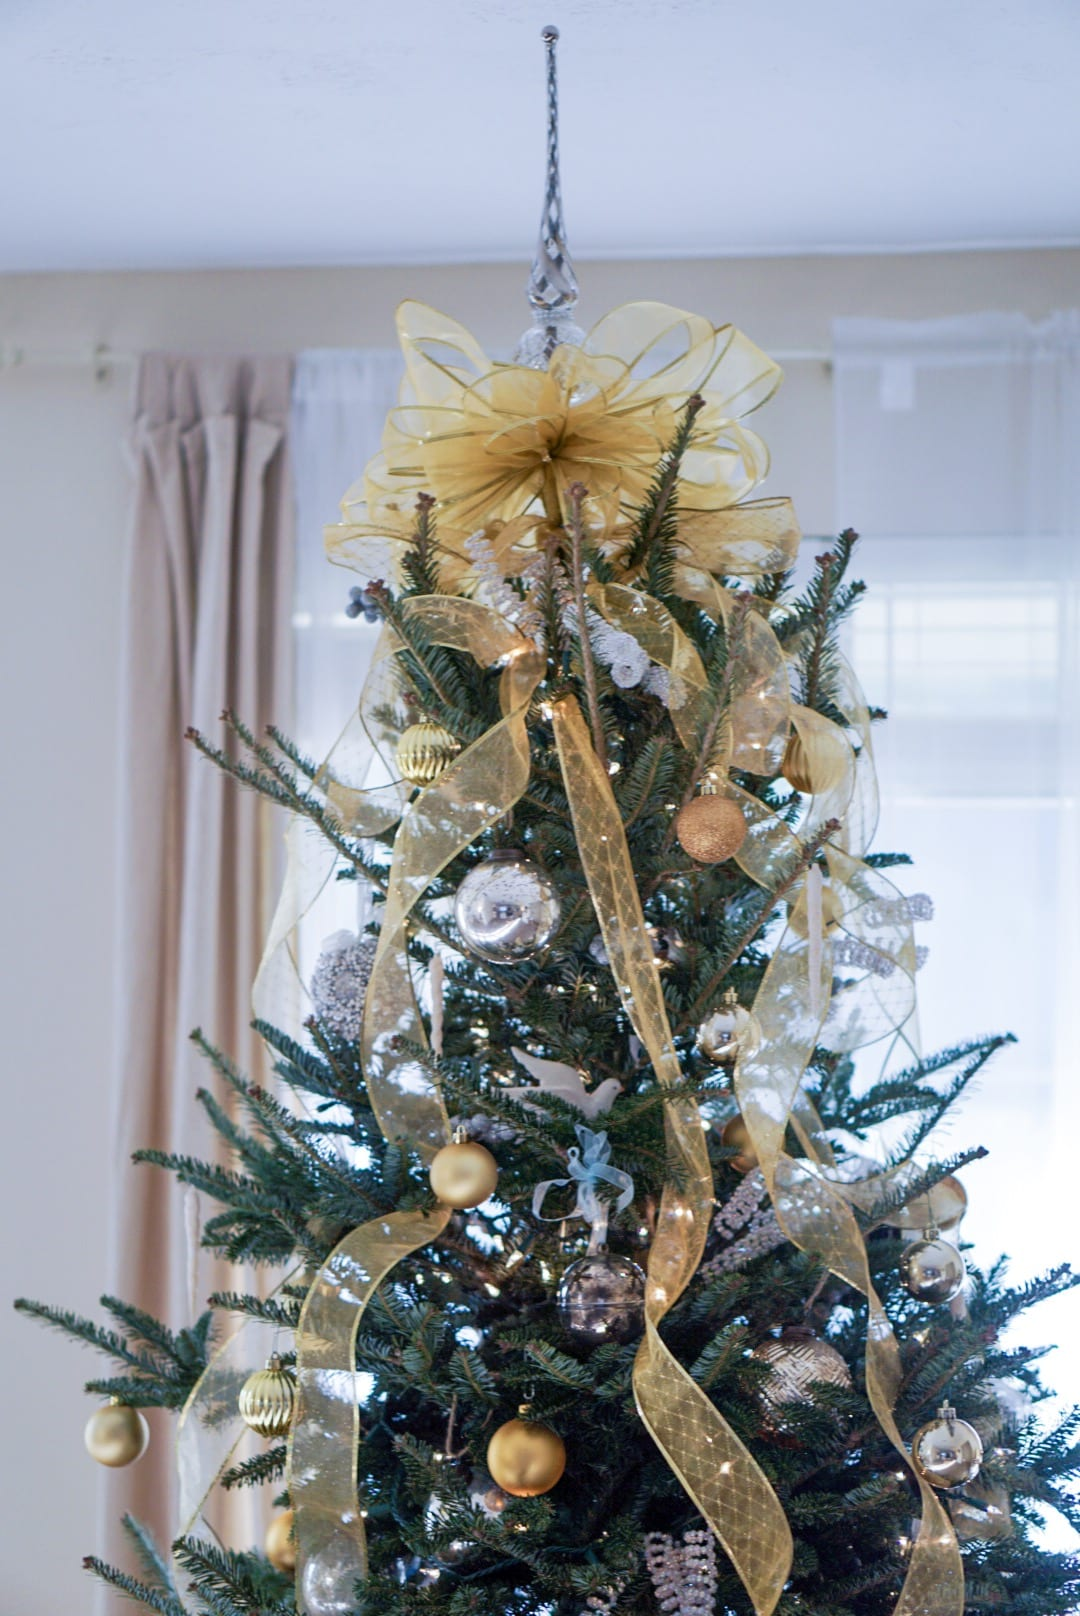 gift guide for the home, christmas decor, home holiday decor, Fraser fir tree, real christmas tree, Christmas tree decor, gold and silver christmas tree